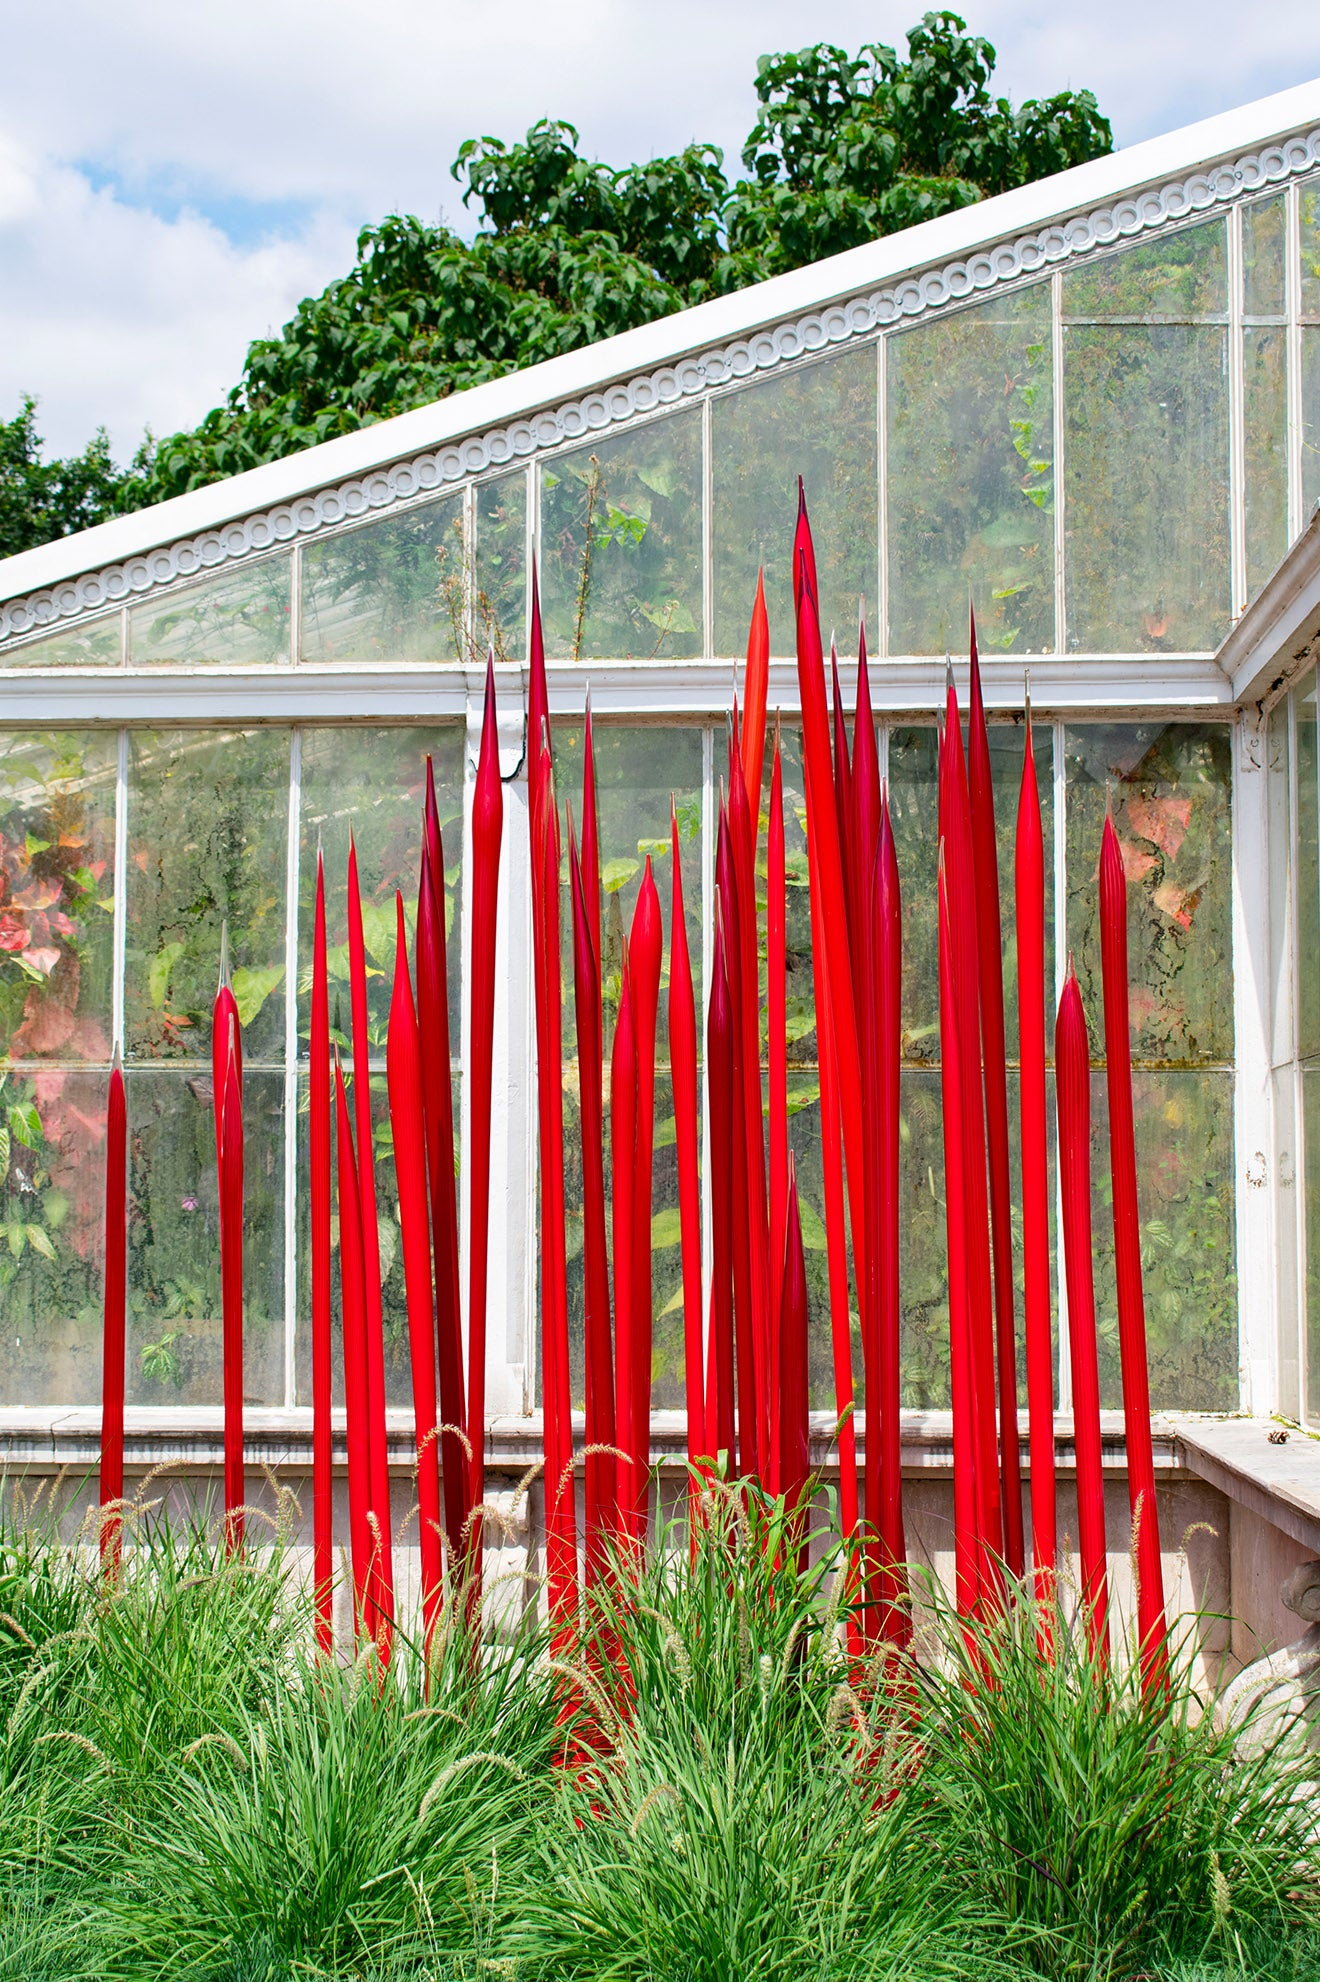 Chihuly: Reflections on nature at Kew Gardens